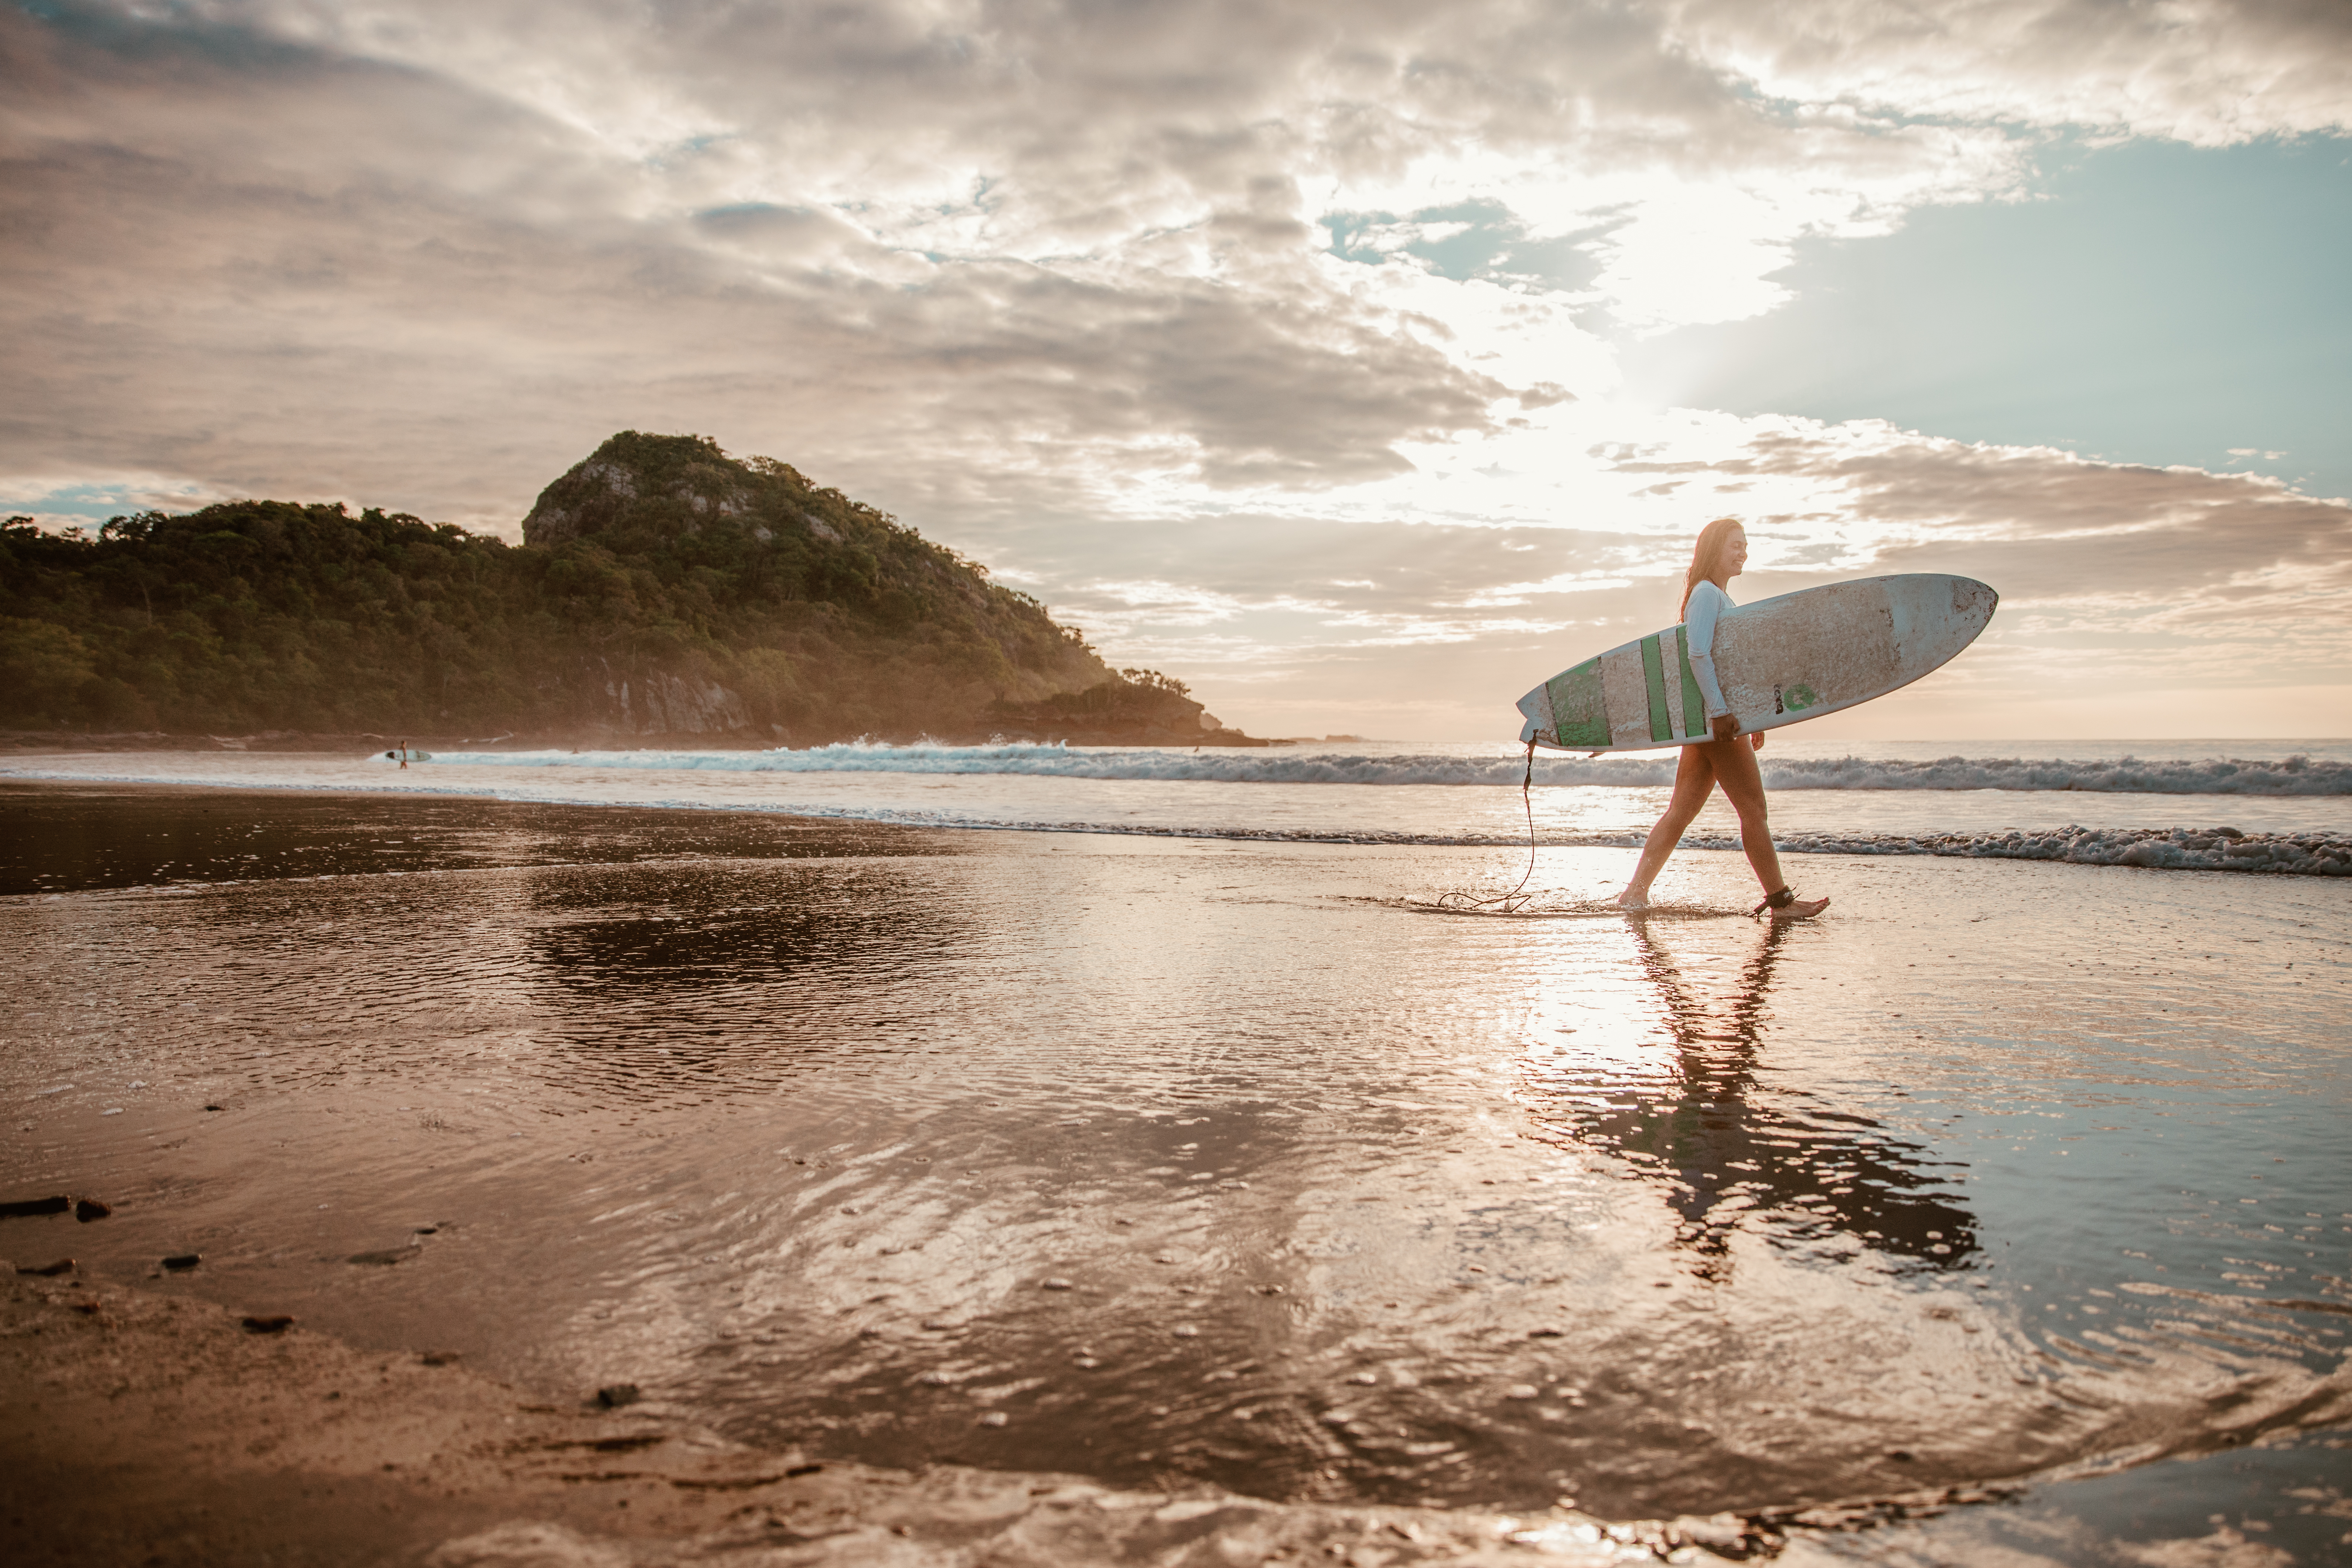 Summer Program - Surfing | Pacific Discovery: Summer Programs Abroad